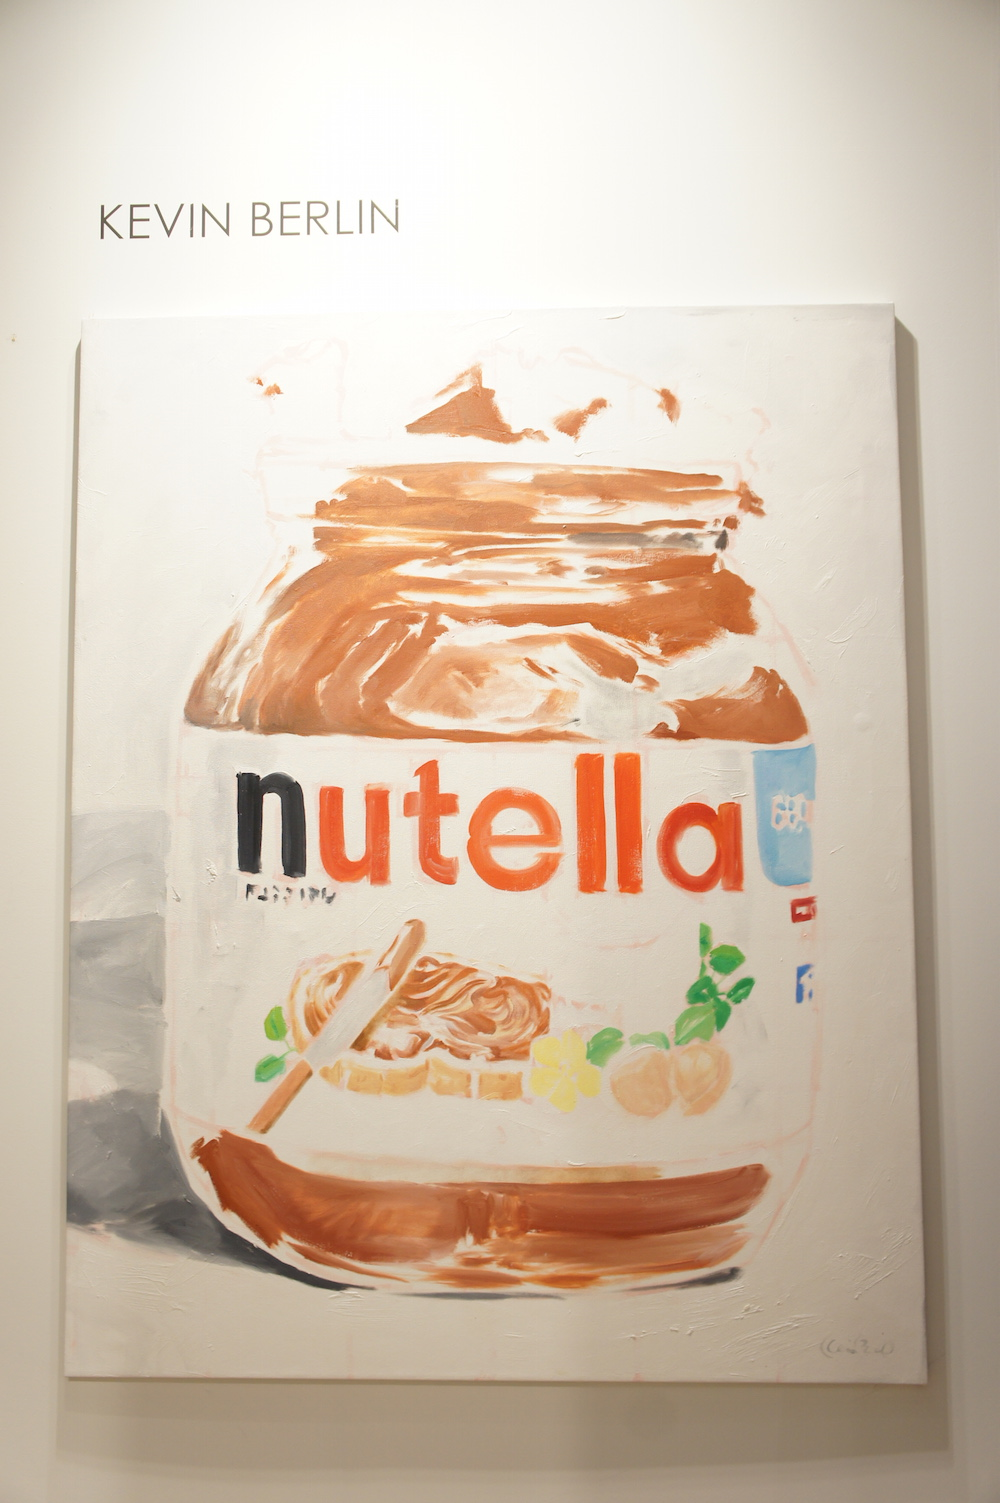 Kevin Berlin, Nutella 640 gr, 2015, Oil on canvas, Vogelsang Gallery image: rachel kalina